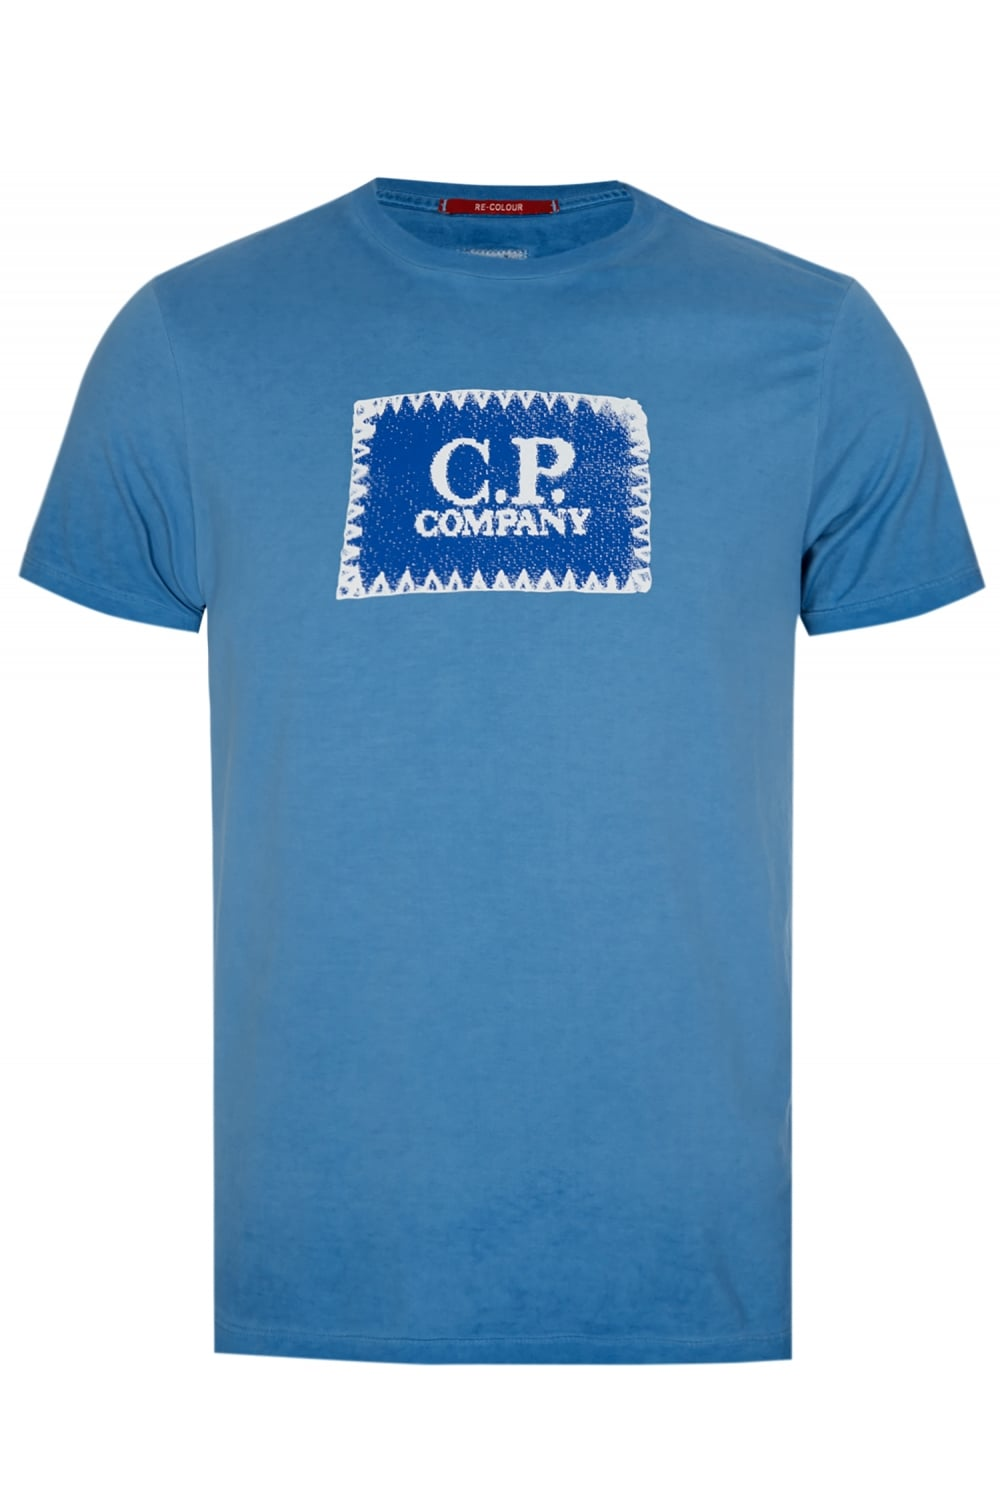 C p company box logo t shirt blue for T shirts for business logo